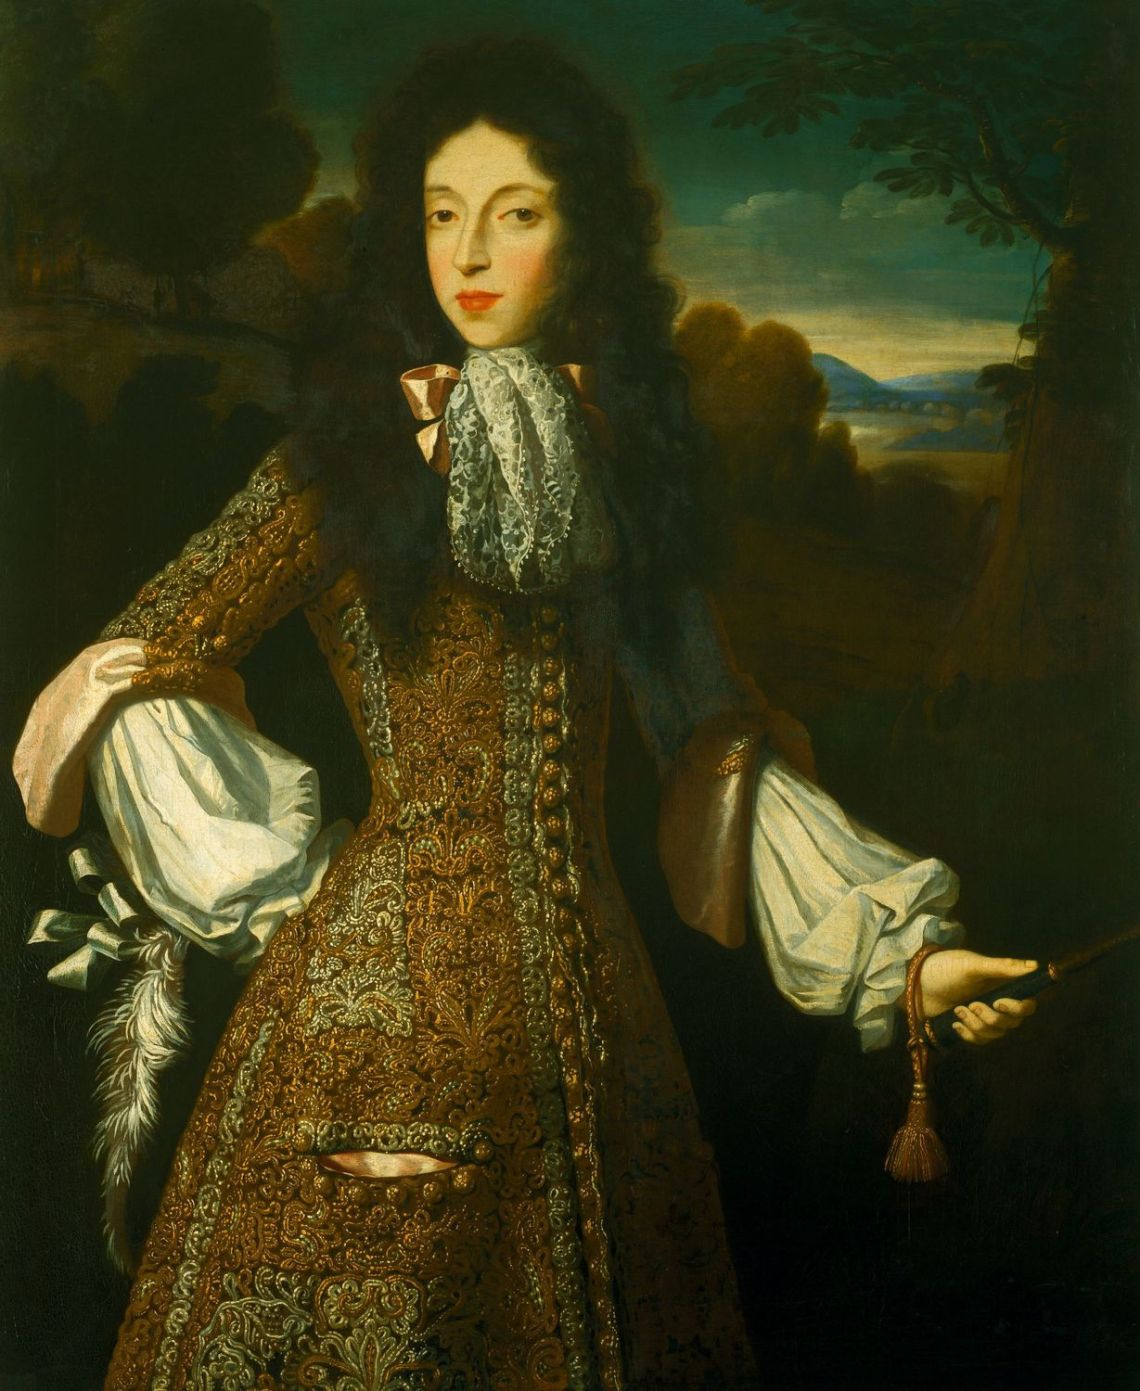 Mary Duchess of modena wife of James II of england, 1675, Royal col, UK